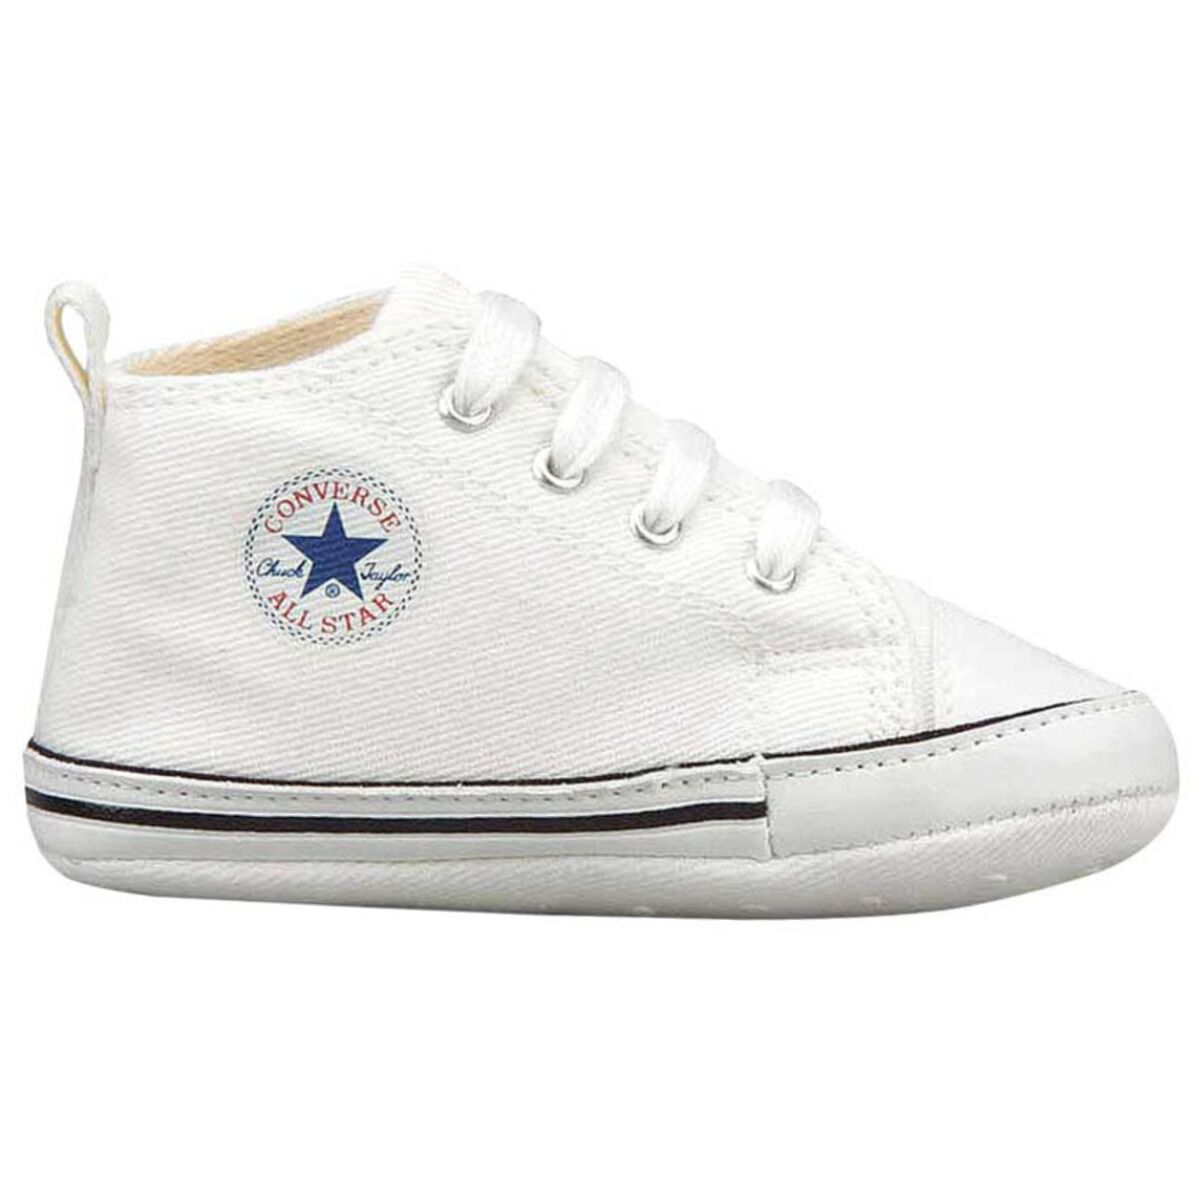 Converse Chuck Taylor First Star Infant Shoes White US 4